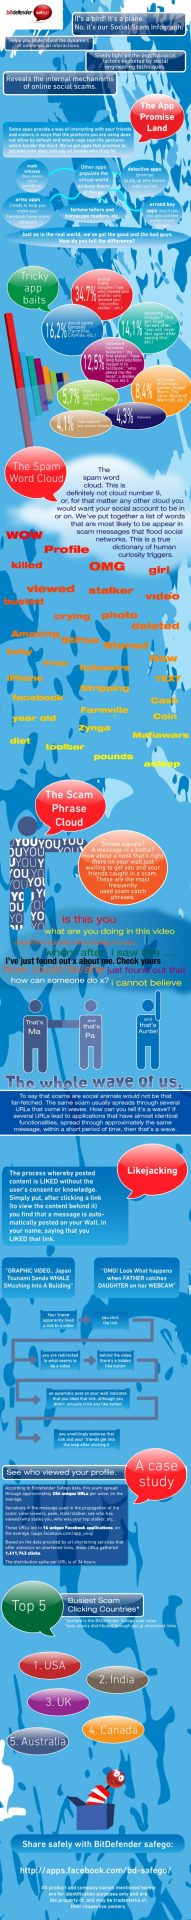 Facebook Infographic - Click Scams